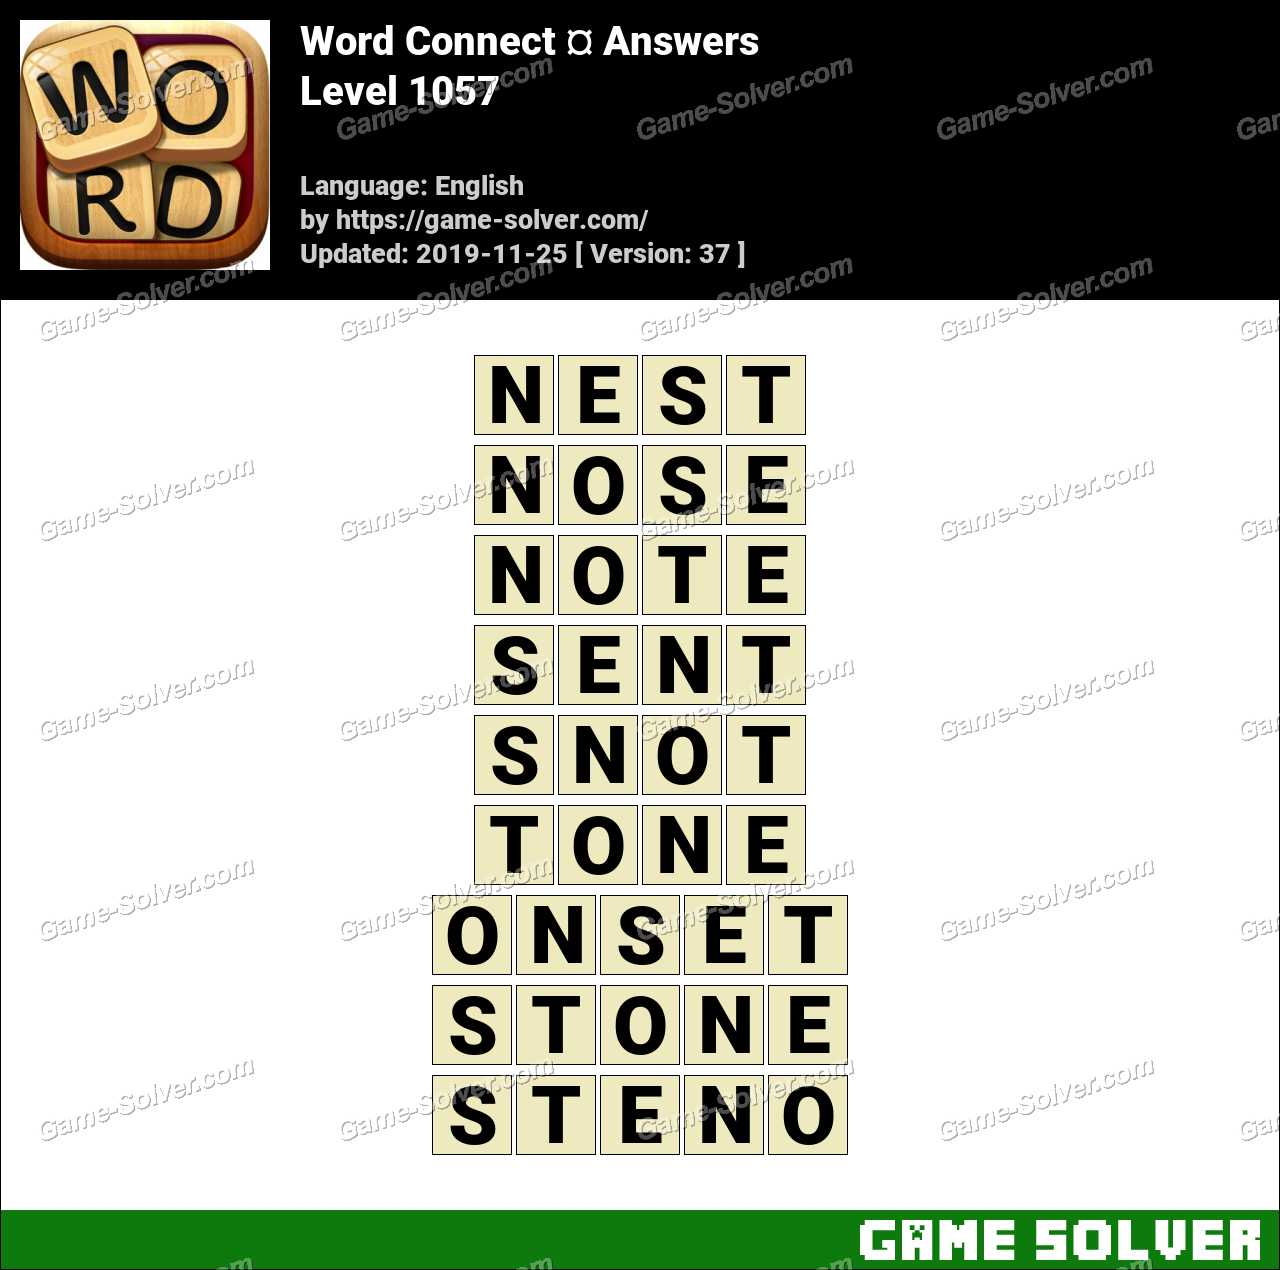 Word Connect Level 1057 Answers